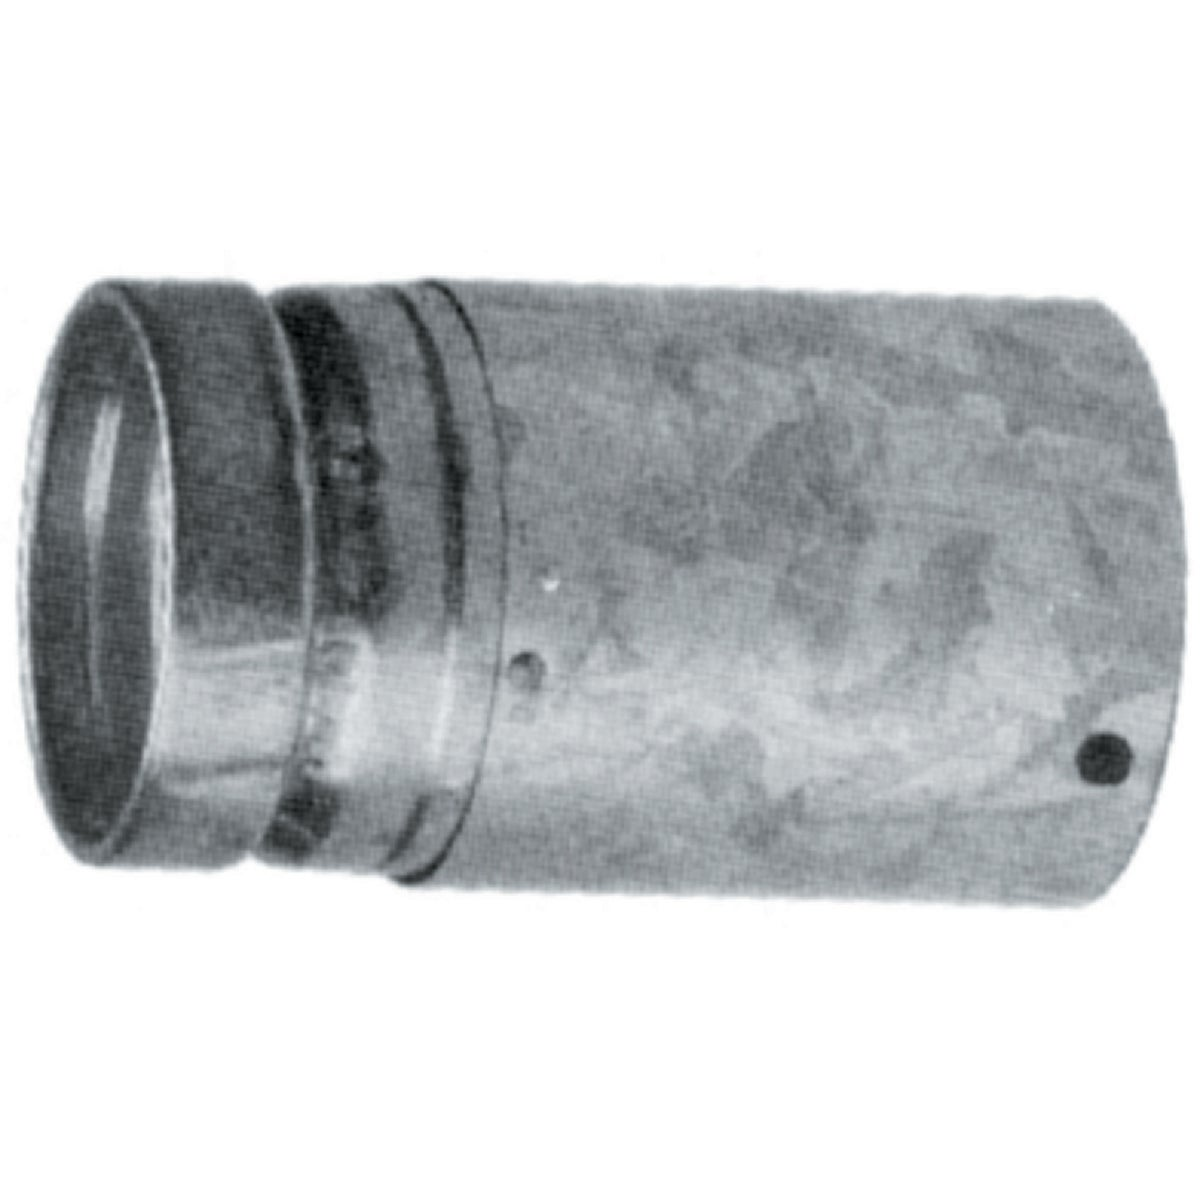 "4"" ADJ GAS VENT PIPE - 4RV-EZAJ18 by Selkirk Corporation"